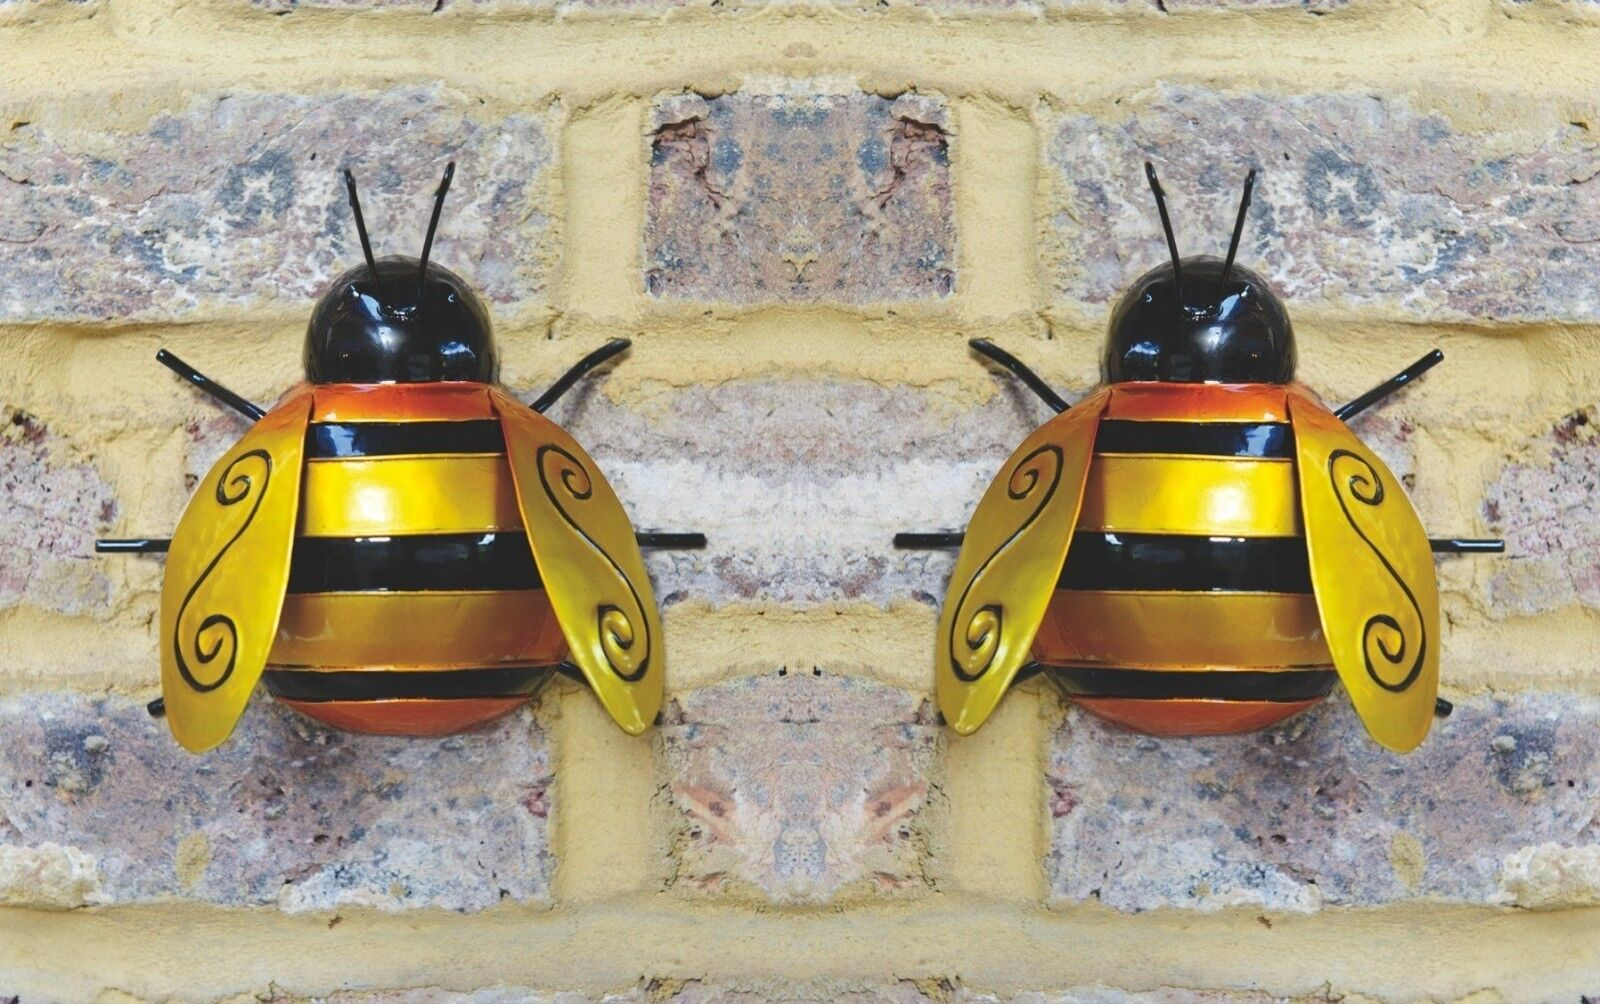 2X LARGE METAL Bumble Bee Summer Garden Decoration Ornament Wall Art ...